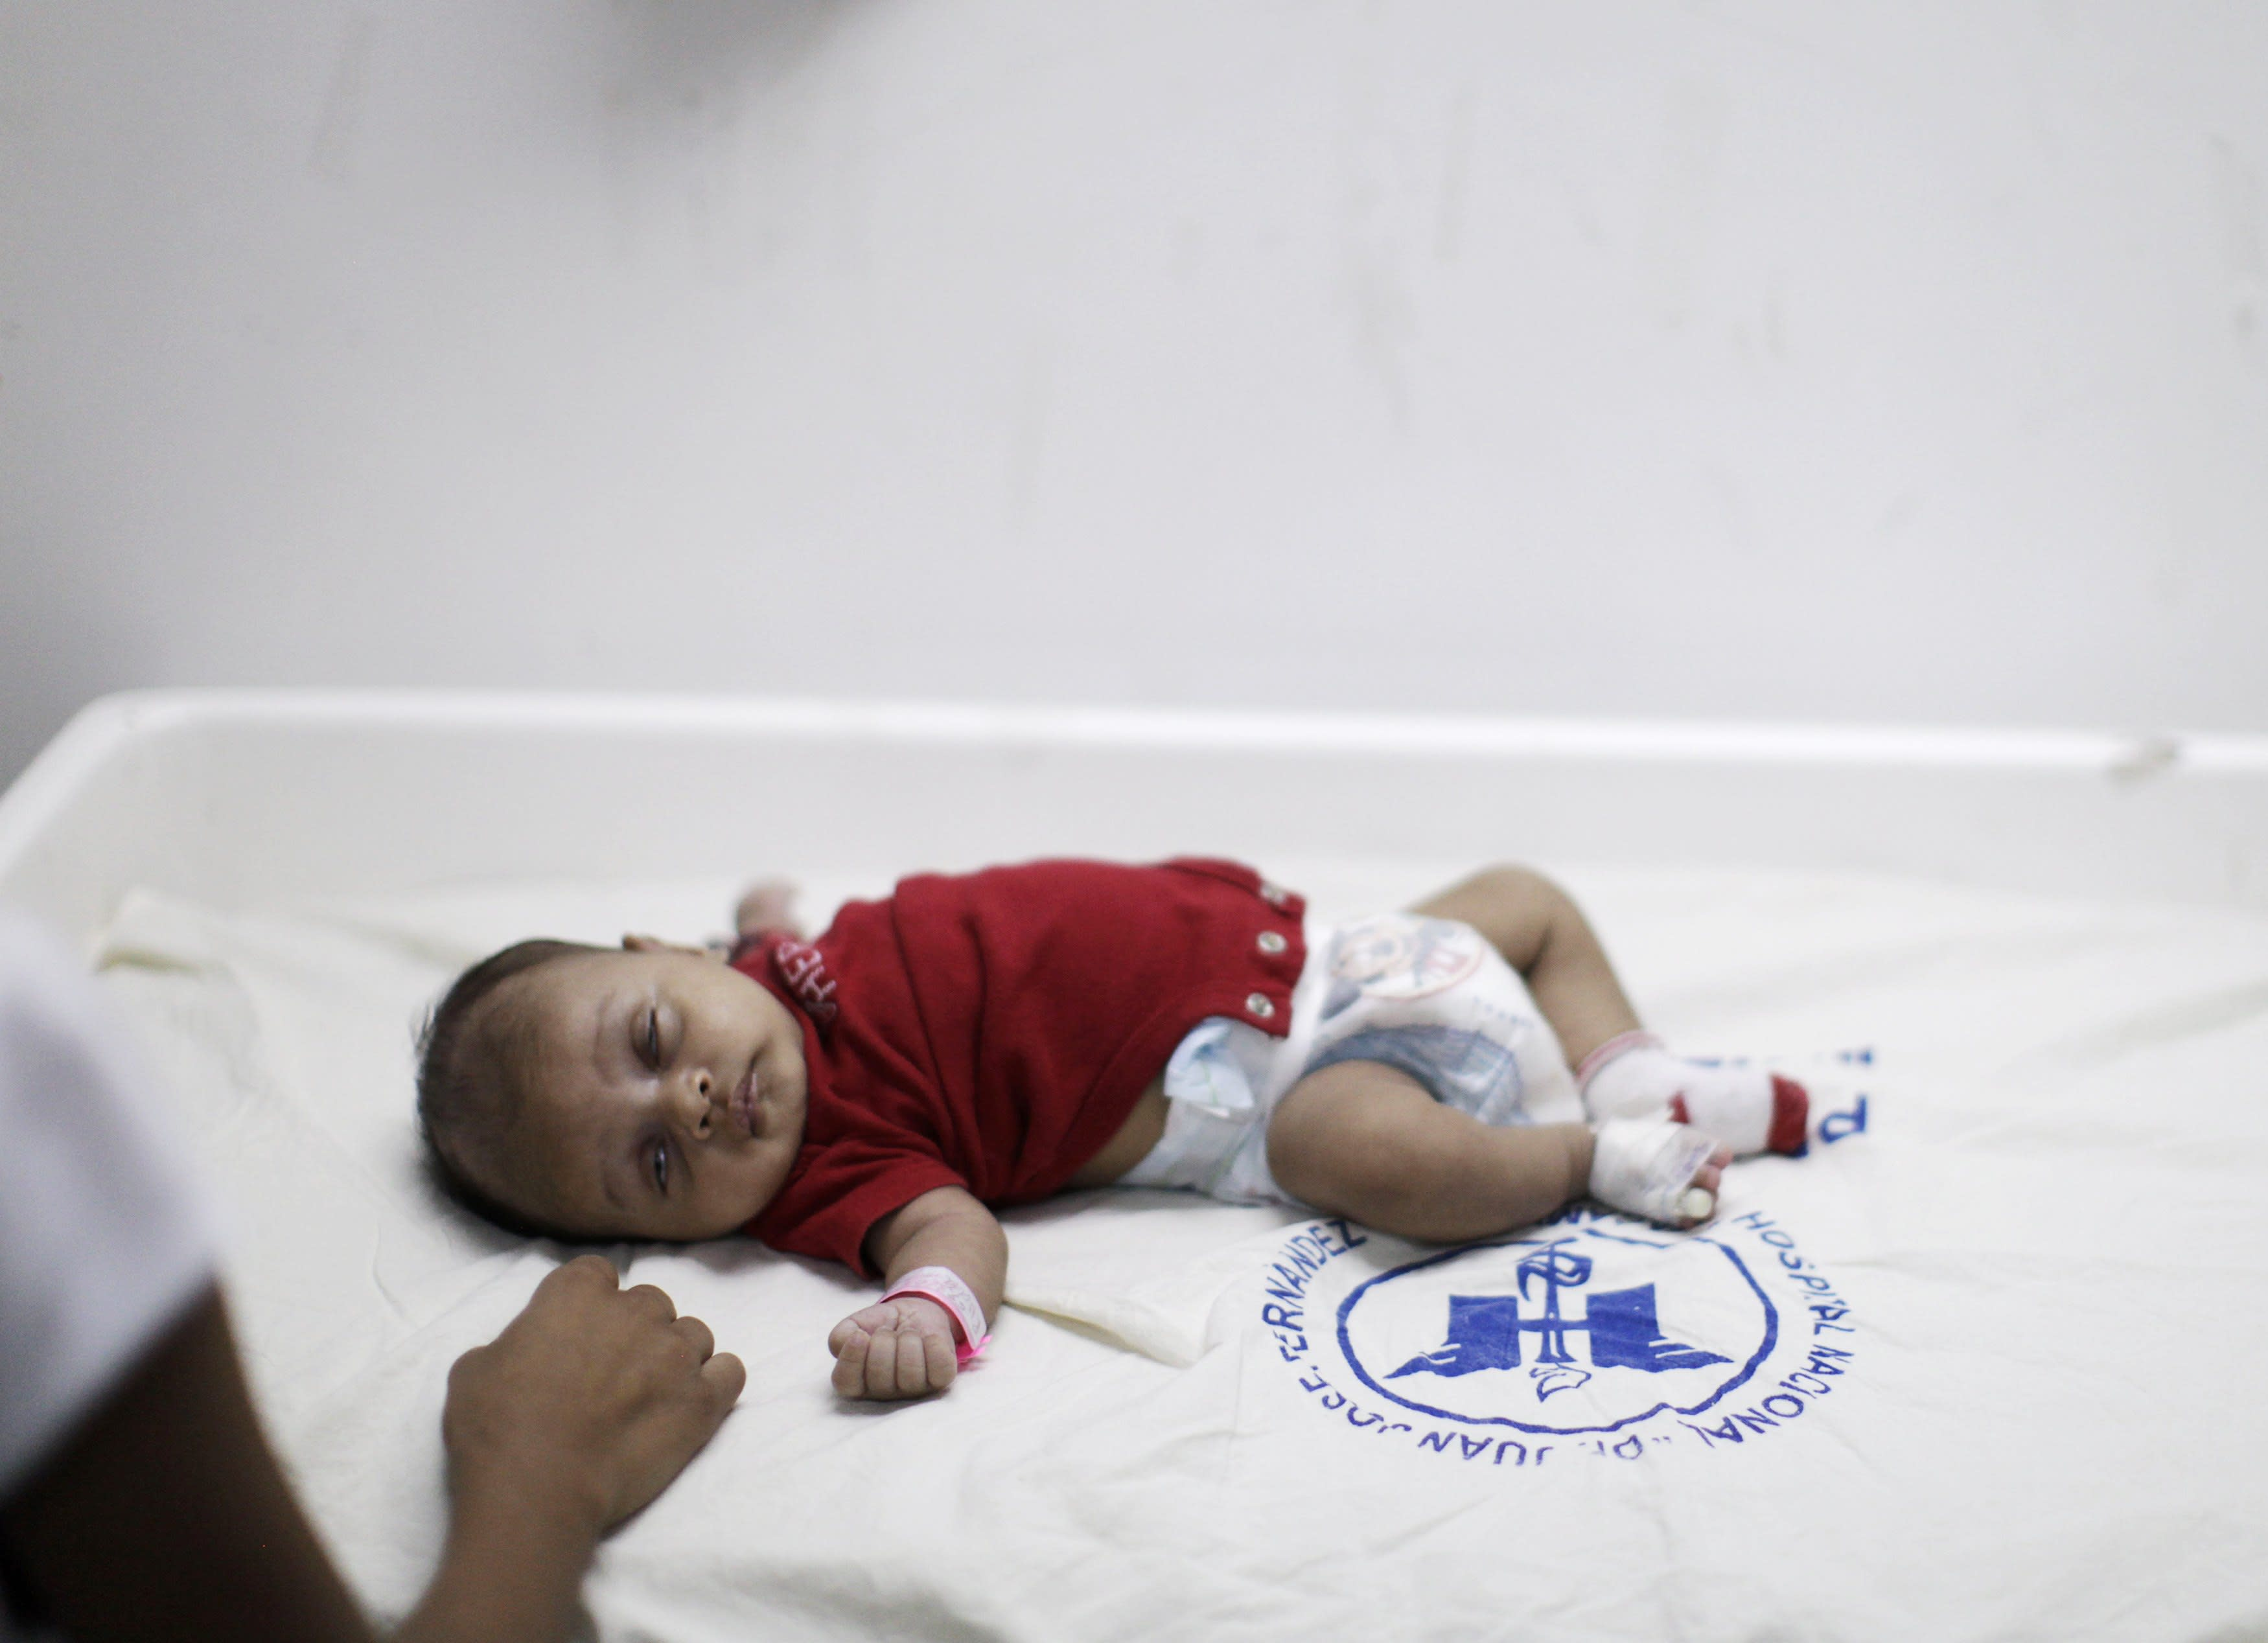 Baby Miguel Angel is being looked after by a nurse as he is showing chikungunya fever symptons at the pediatric ward of the Zacamil Hospital in Mejicanos, on the outskirts of San Salvador